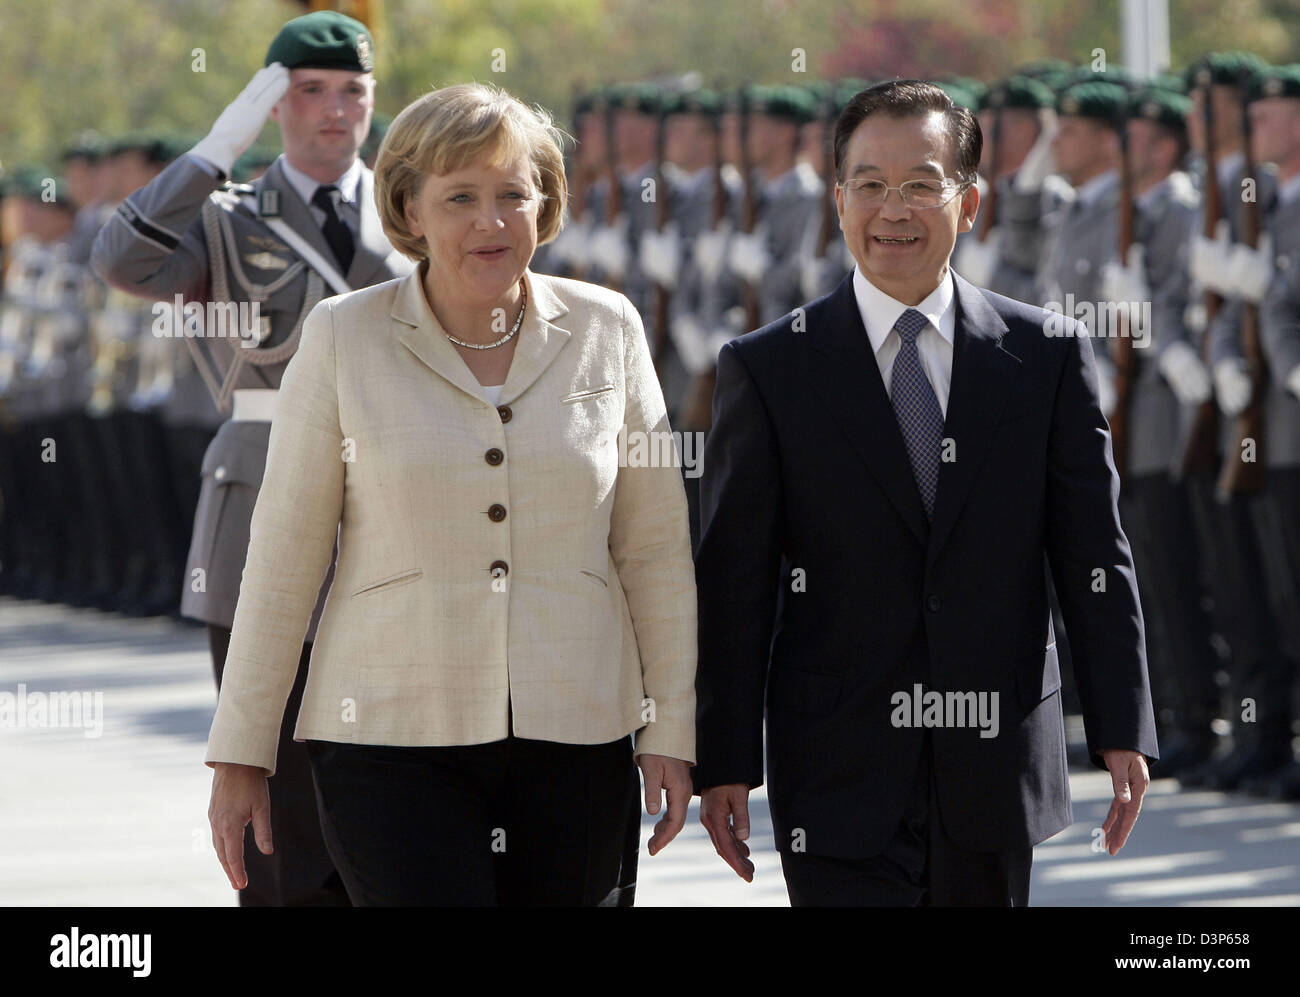 German Chancellor Angela Merkel (L) welcomes Chinese Premier Wen Jiabao with military honours in Berlin, Germany, - Stock Image